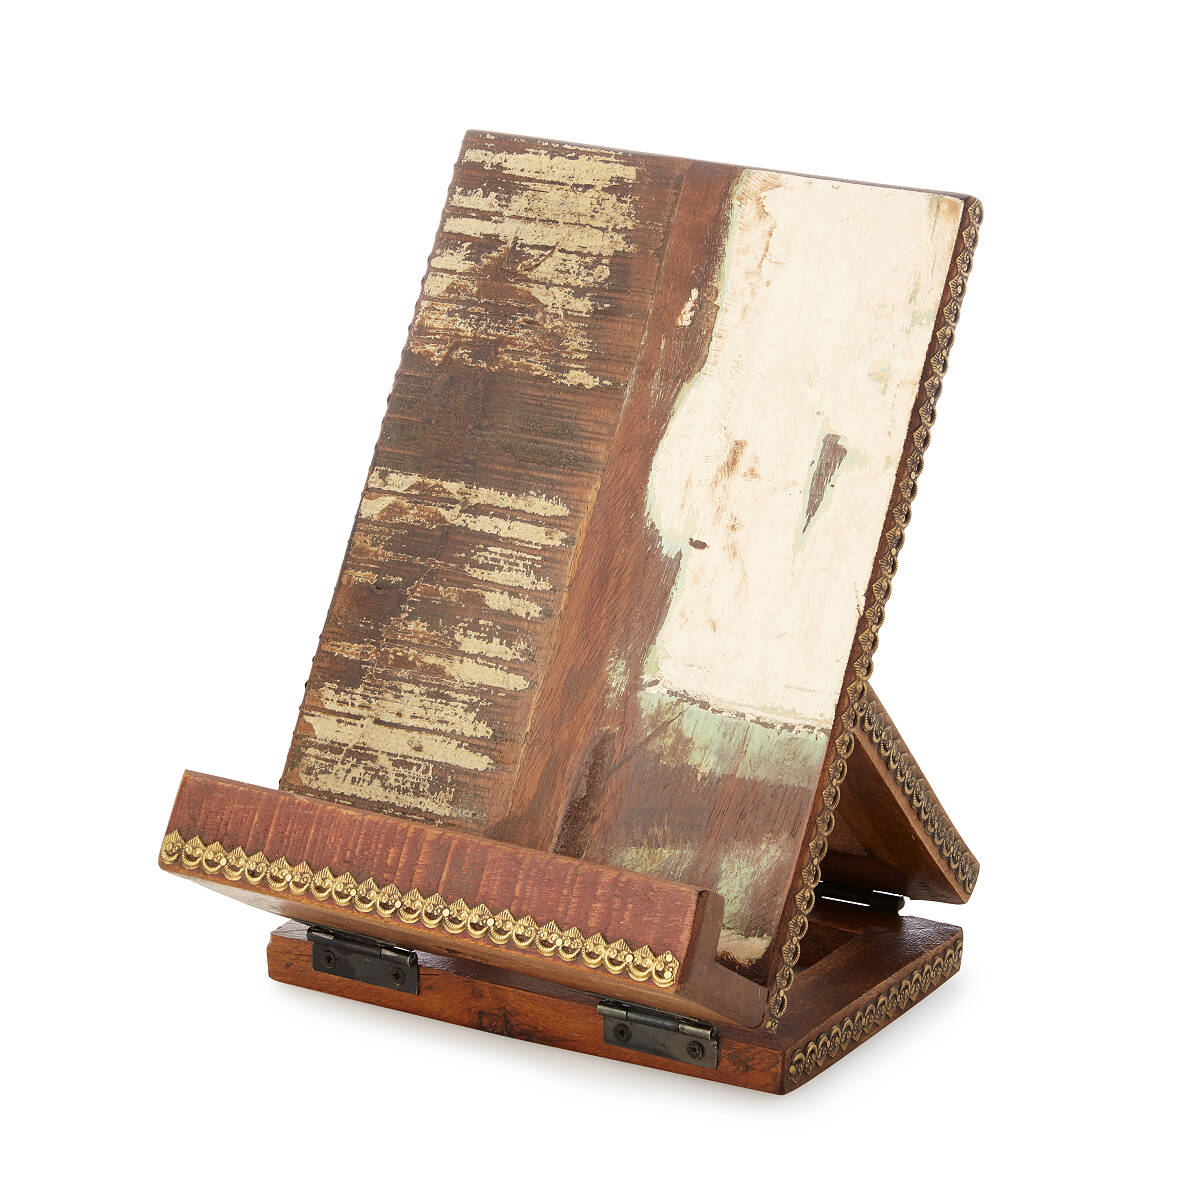 Simple Salvaged Wood Cookbook Tablet Stand Thumbnail Salvaged Wood Cookbook Tablet Stand Cookbook Recipe Book Recipe Book Her Bed Bath Beyond Recipe Book Her Briscoes houzz-02 Recipe Book Holder